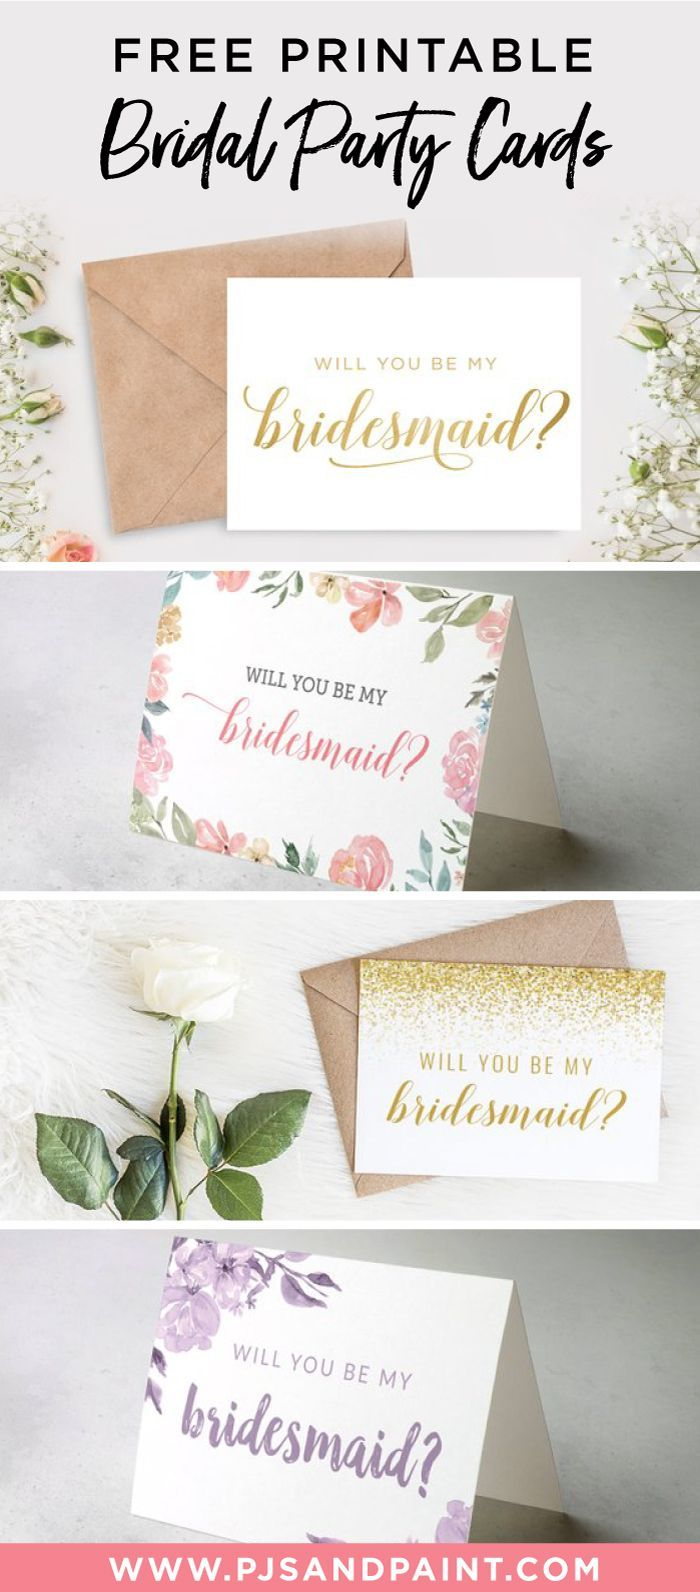 Free Printable Will You Be My Bridesmaid Cards Bridesmaid Invitation Card Will You Be My Bridesmaid Gifts Free Wedding Printables